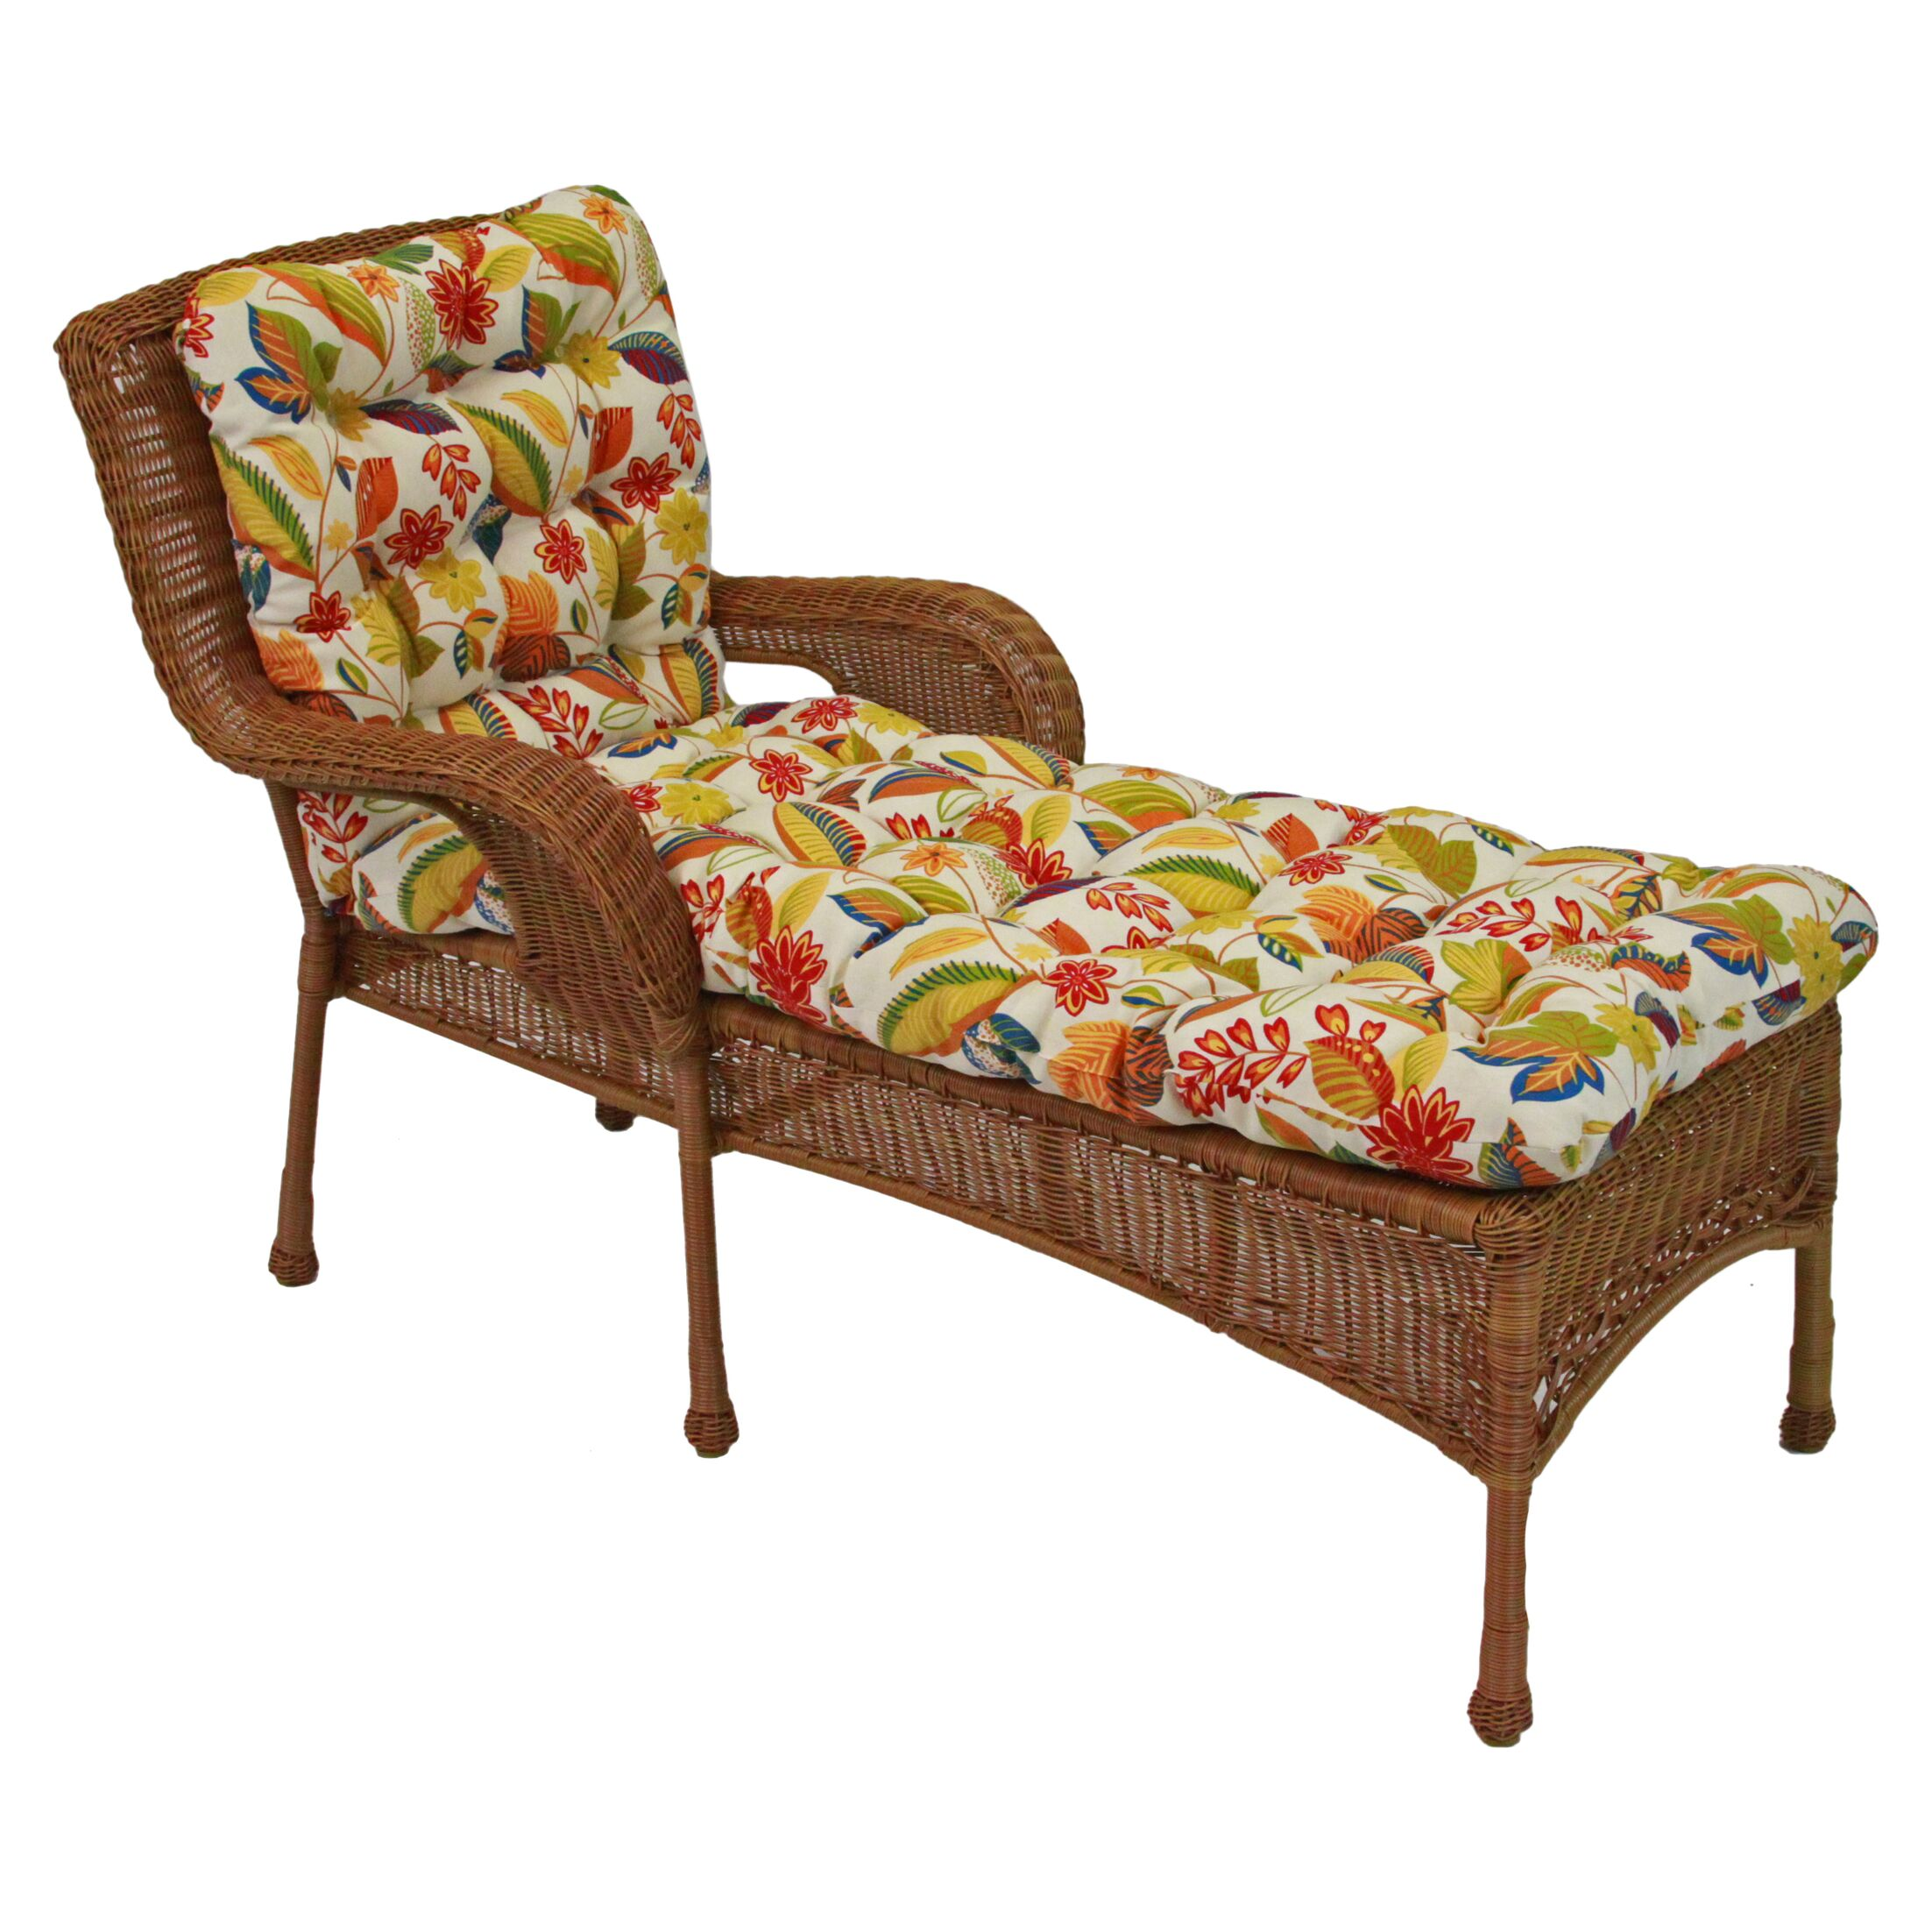 Floral Indoor/Outdoor Chaise Lounge Cushion